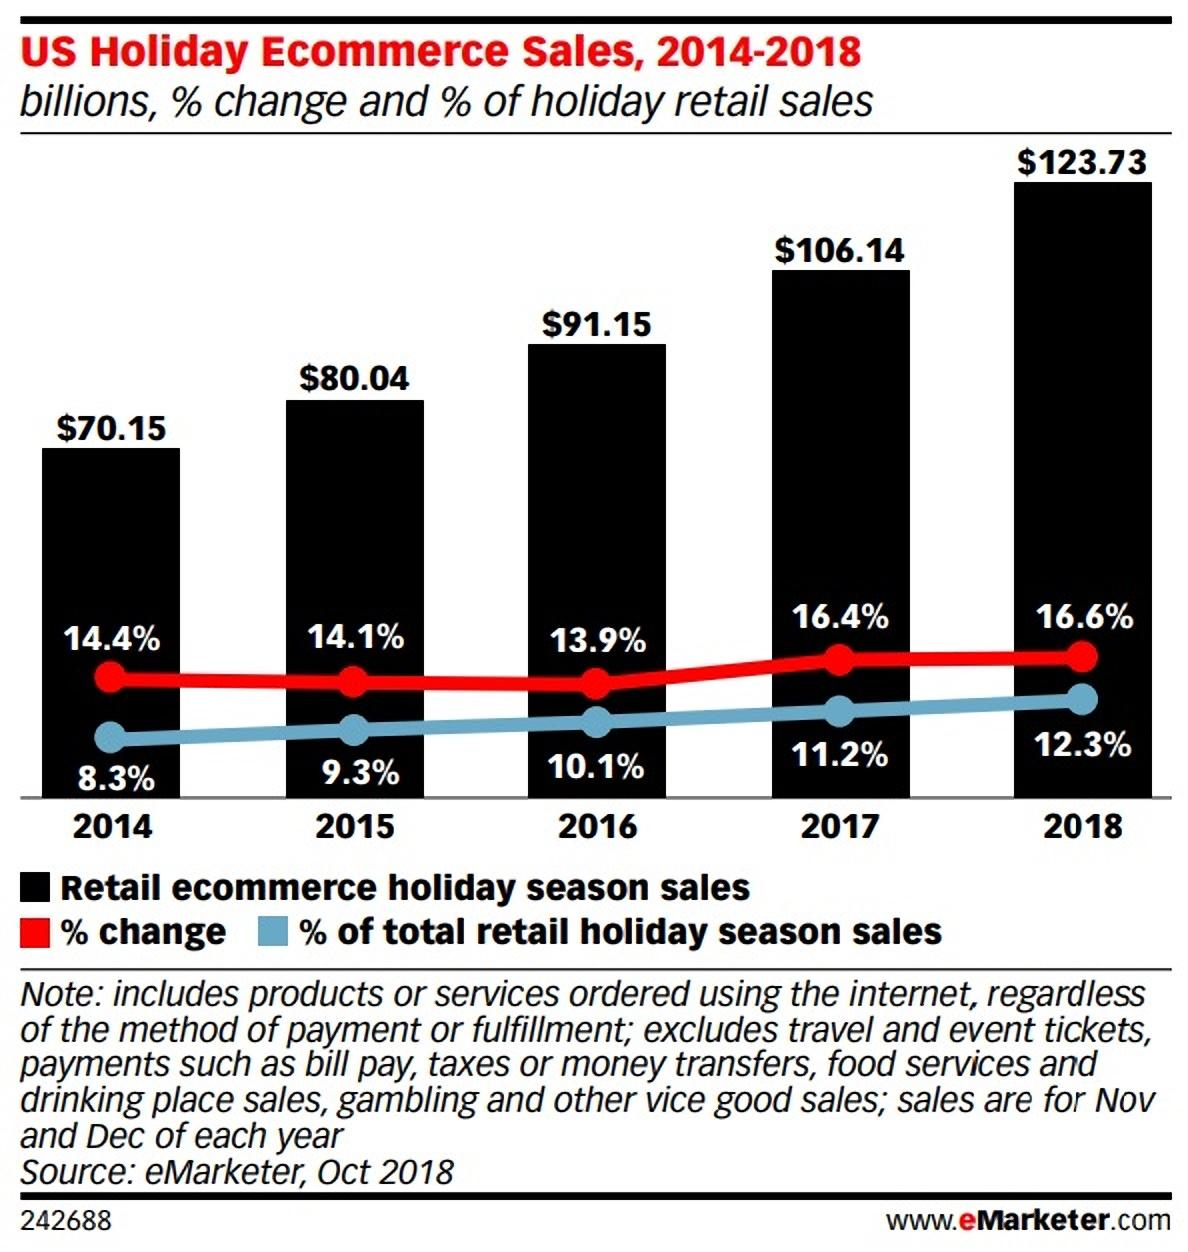 In 2018, holiday retail sales crossed the $1 trillion mark, with the average American shopper spending an average of $846 on gifts—and e-commerce spending in the U.S. hit over $123 billion.